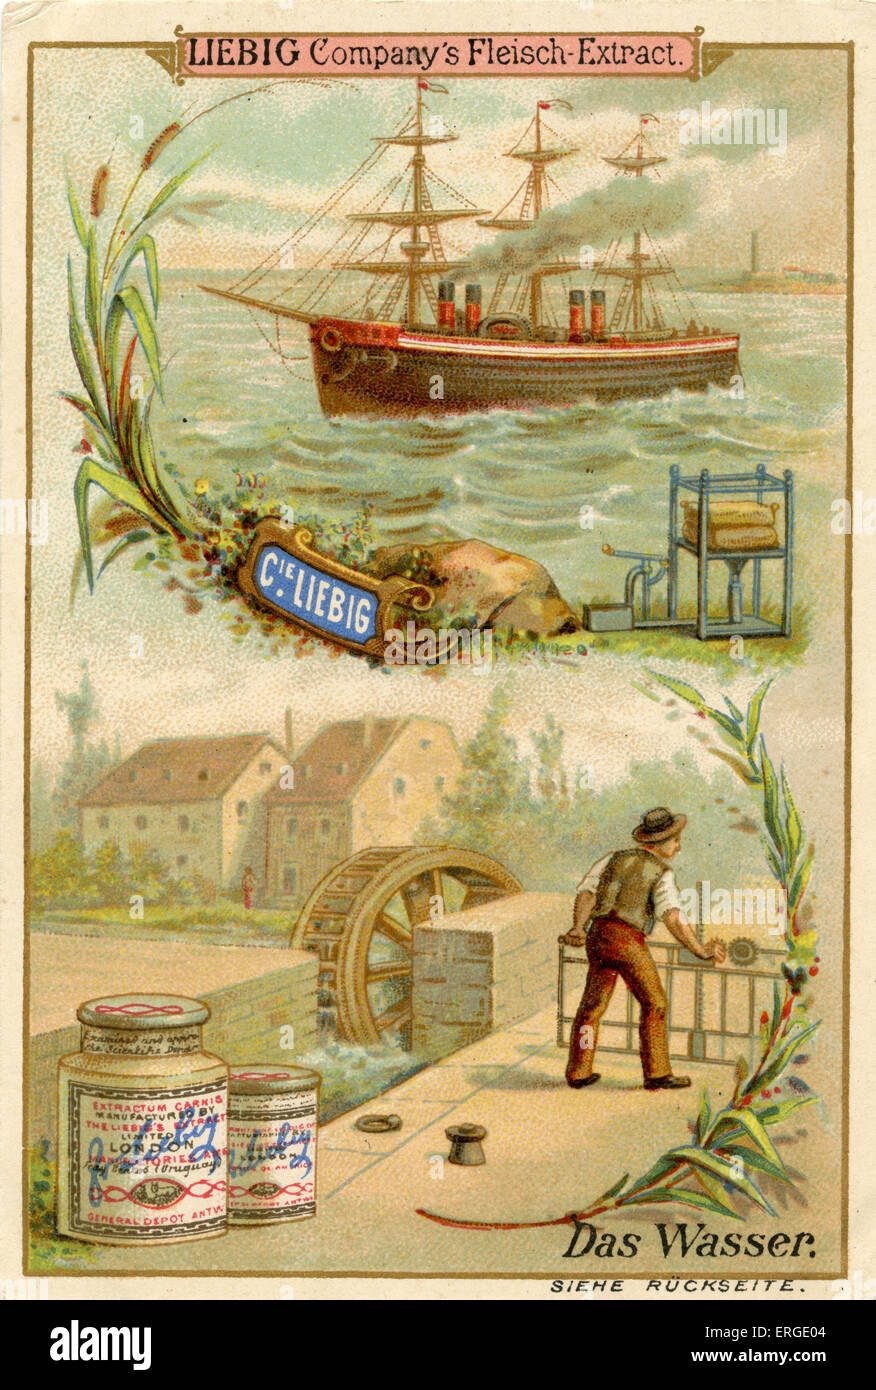 Water ('Das Wasser') - Liebig Company collectible cards,  natural resources series. Published 1892. - Stock Image